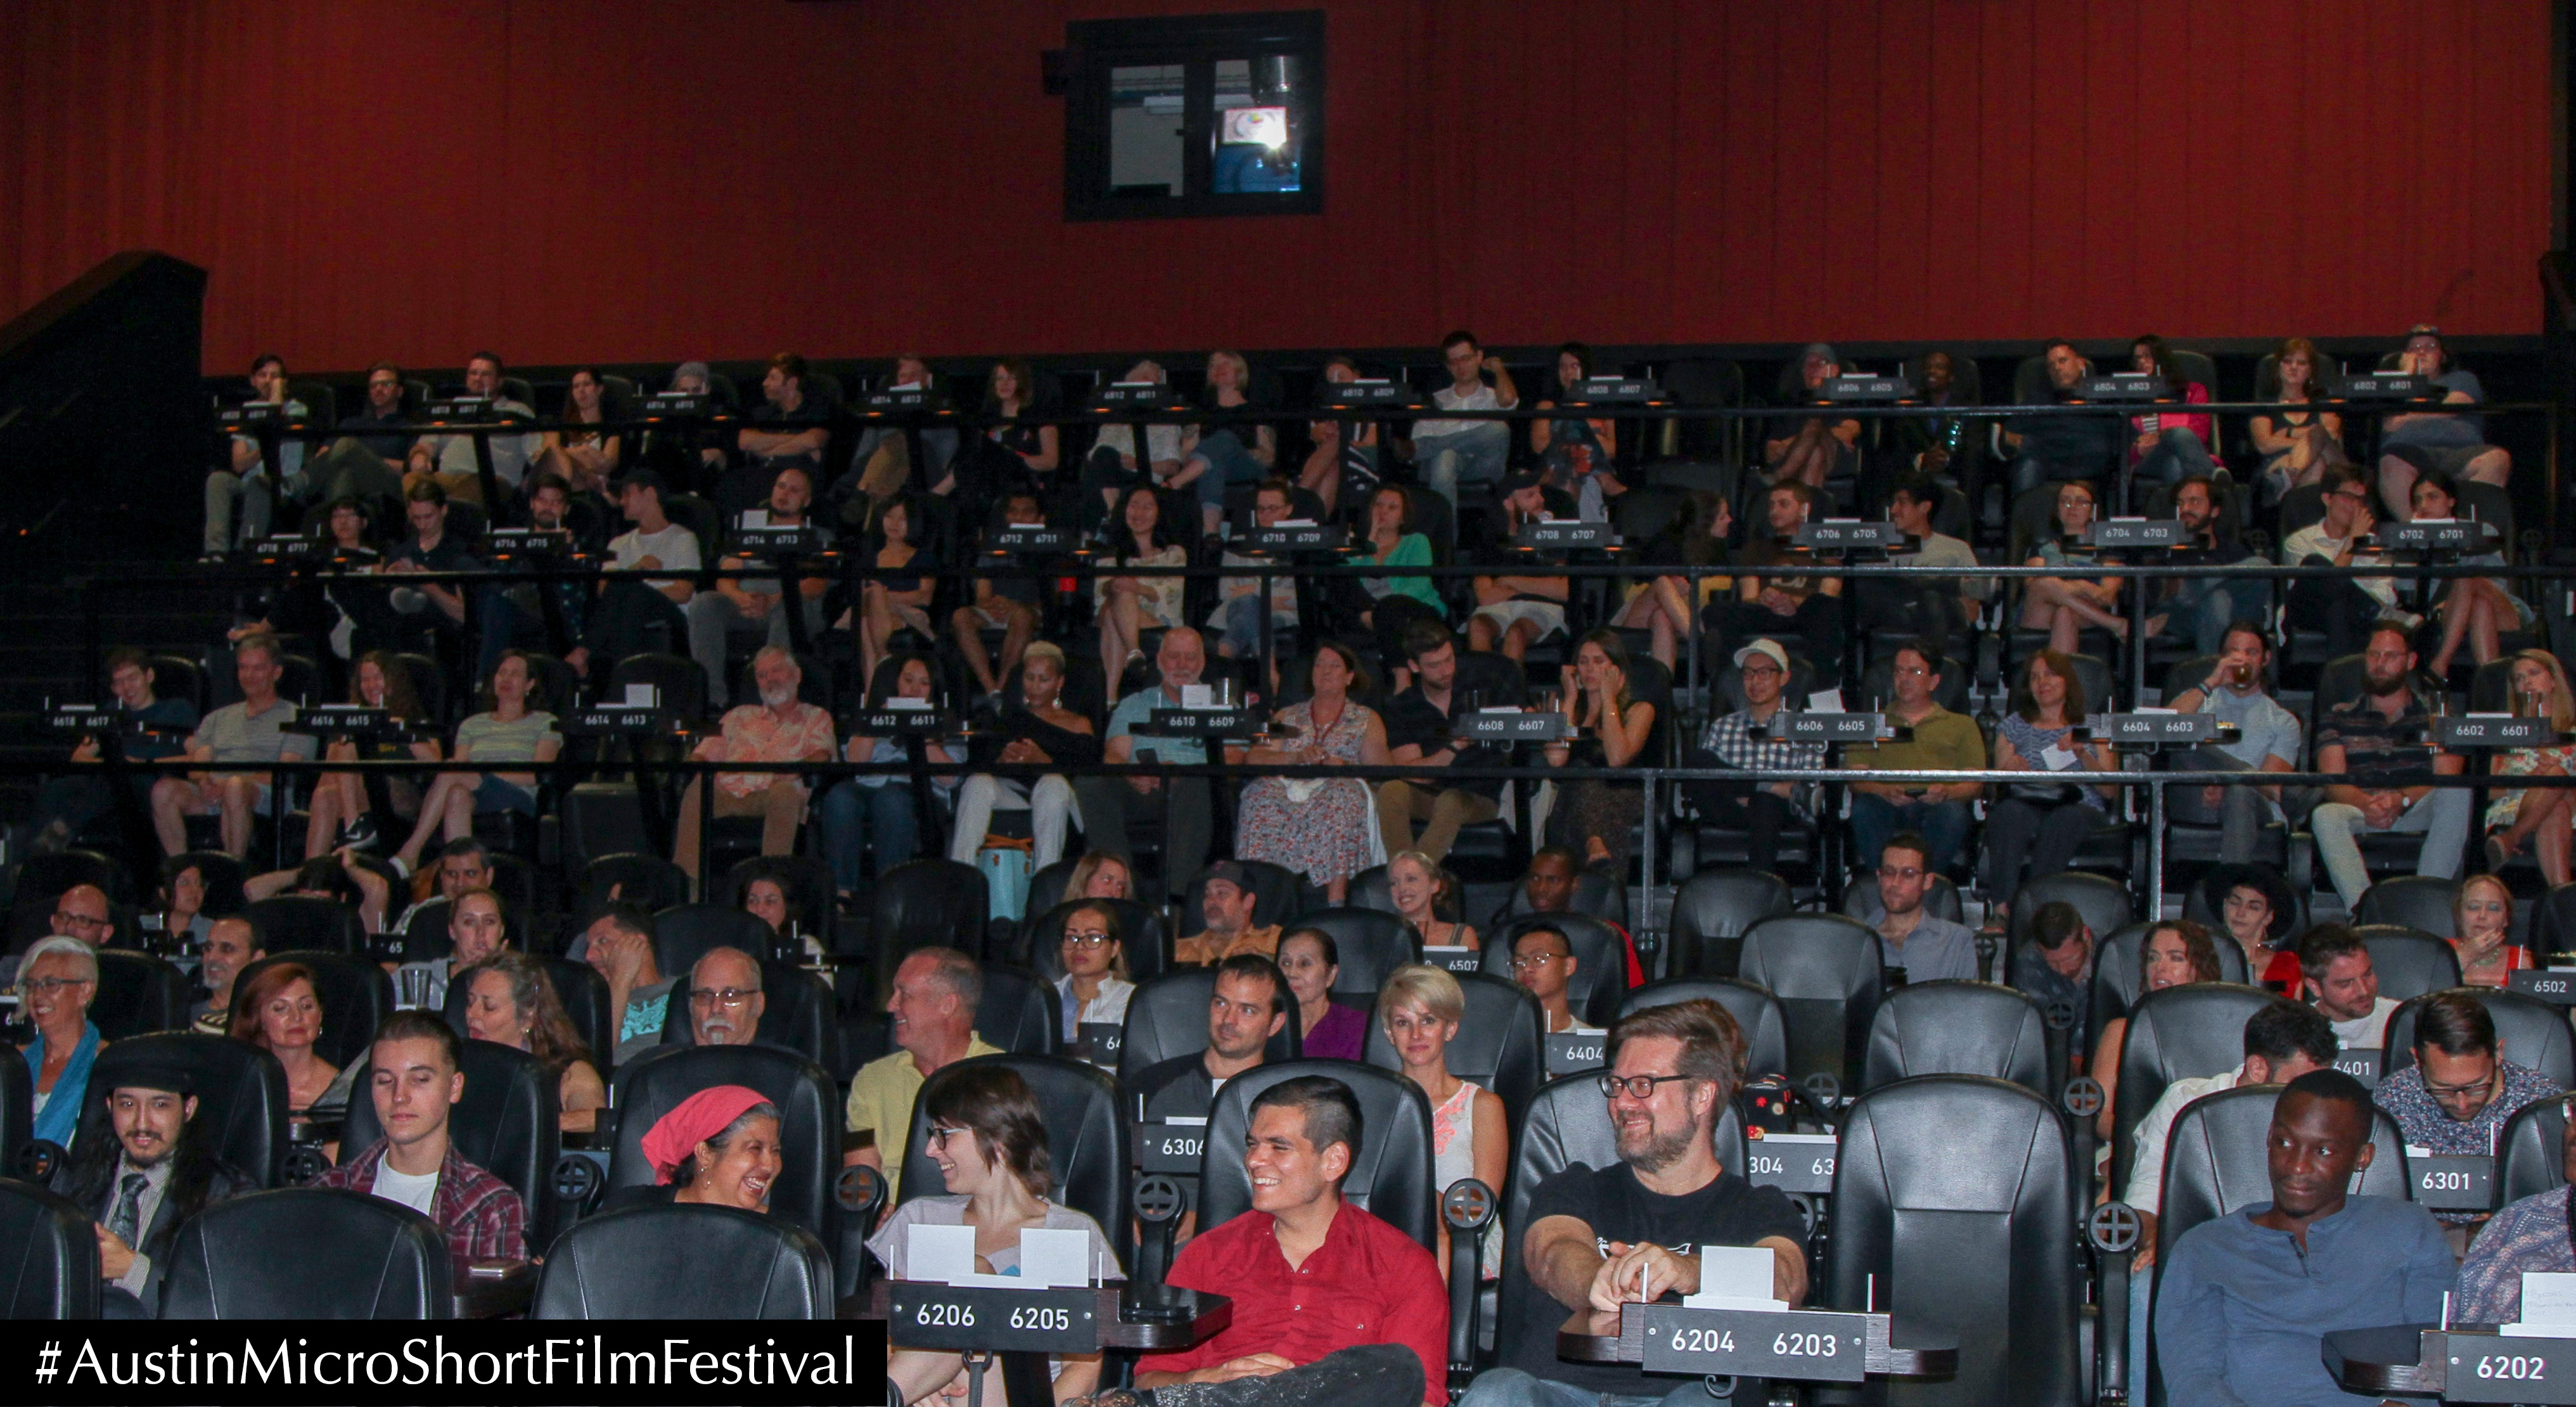 Austin-Micro-Short-Film-Festival-Judging-Guide-For-Animated-Films-2018-Event-Photo-386